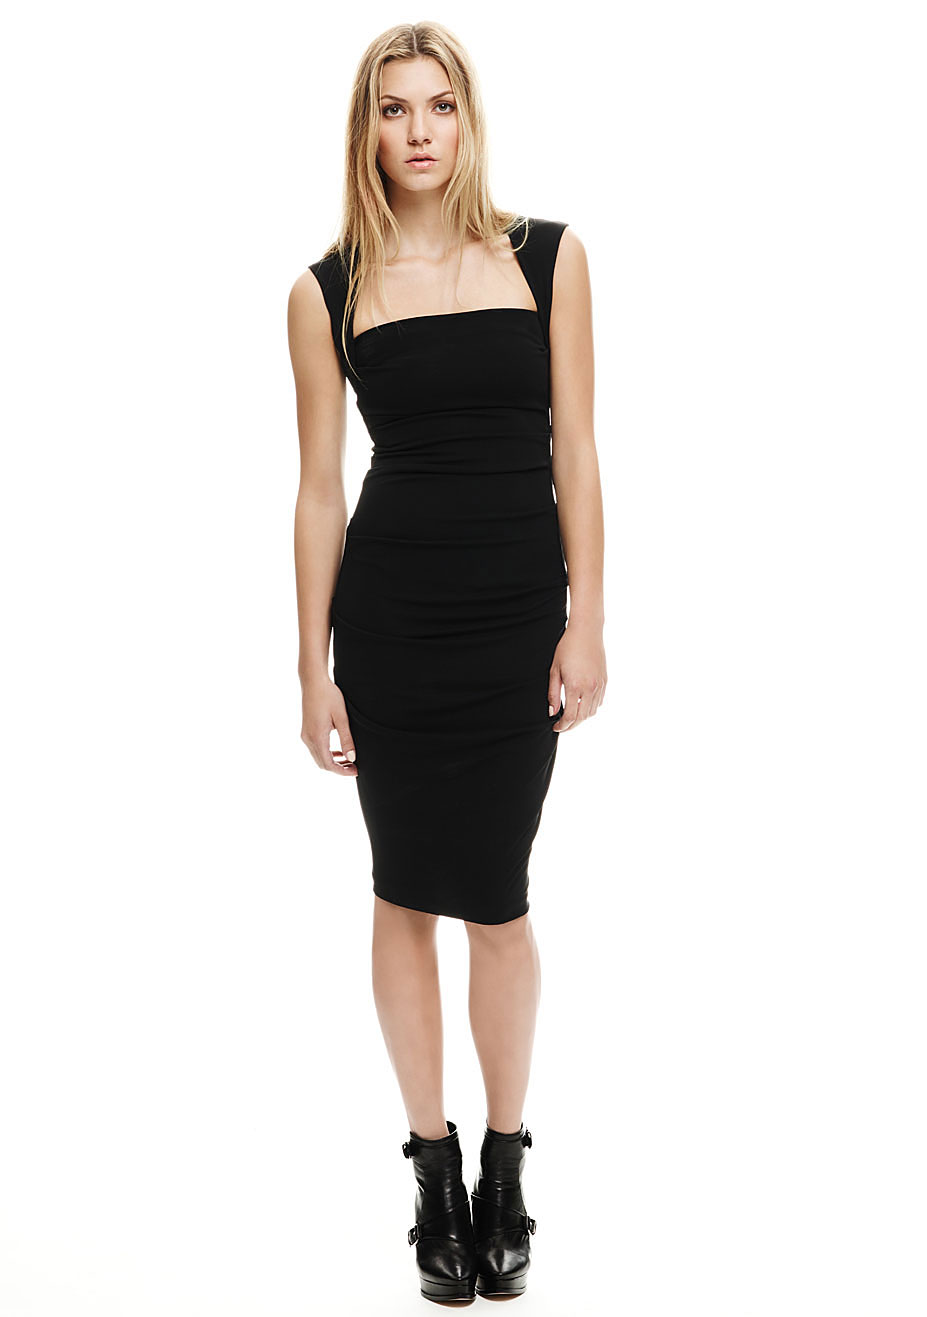 Nicole Miller Stretchy Matte Jersey Dress